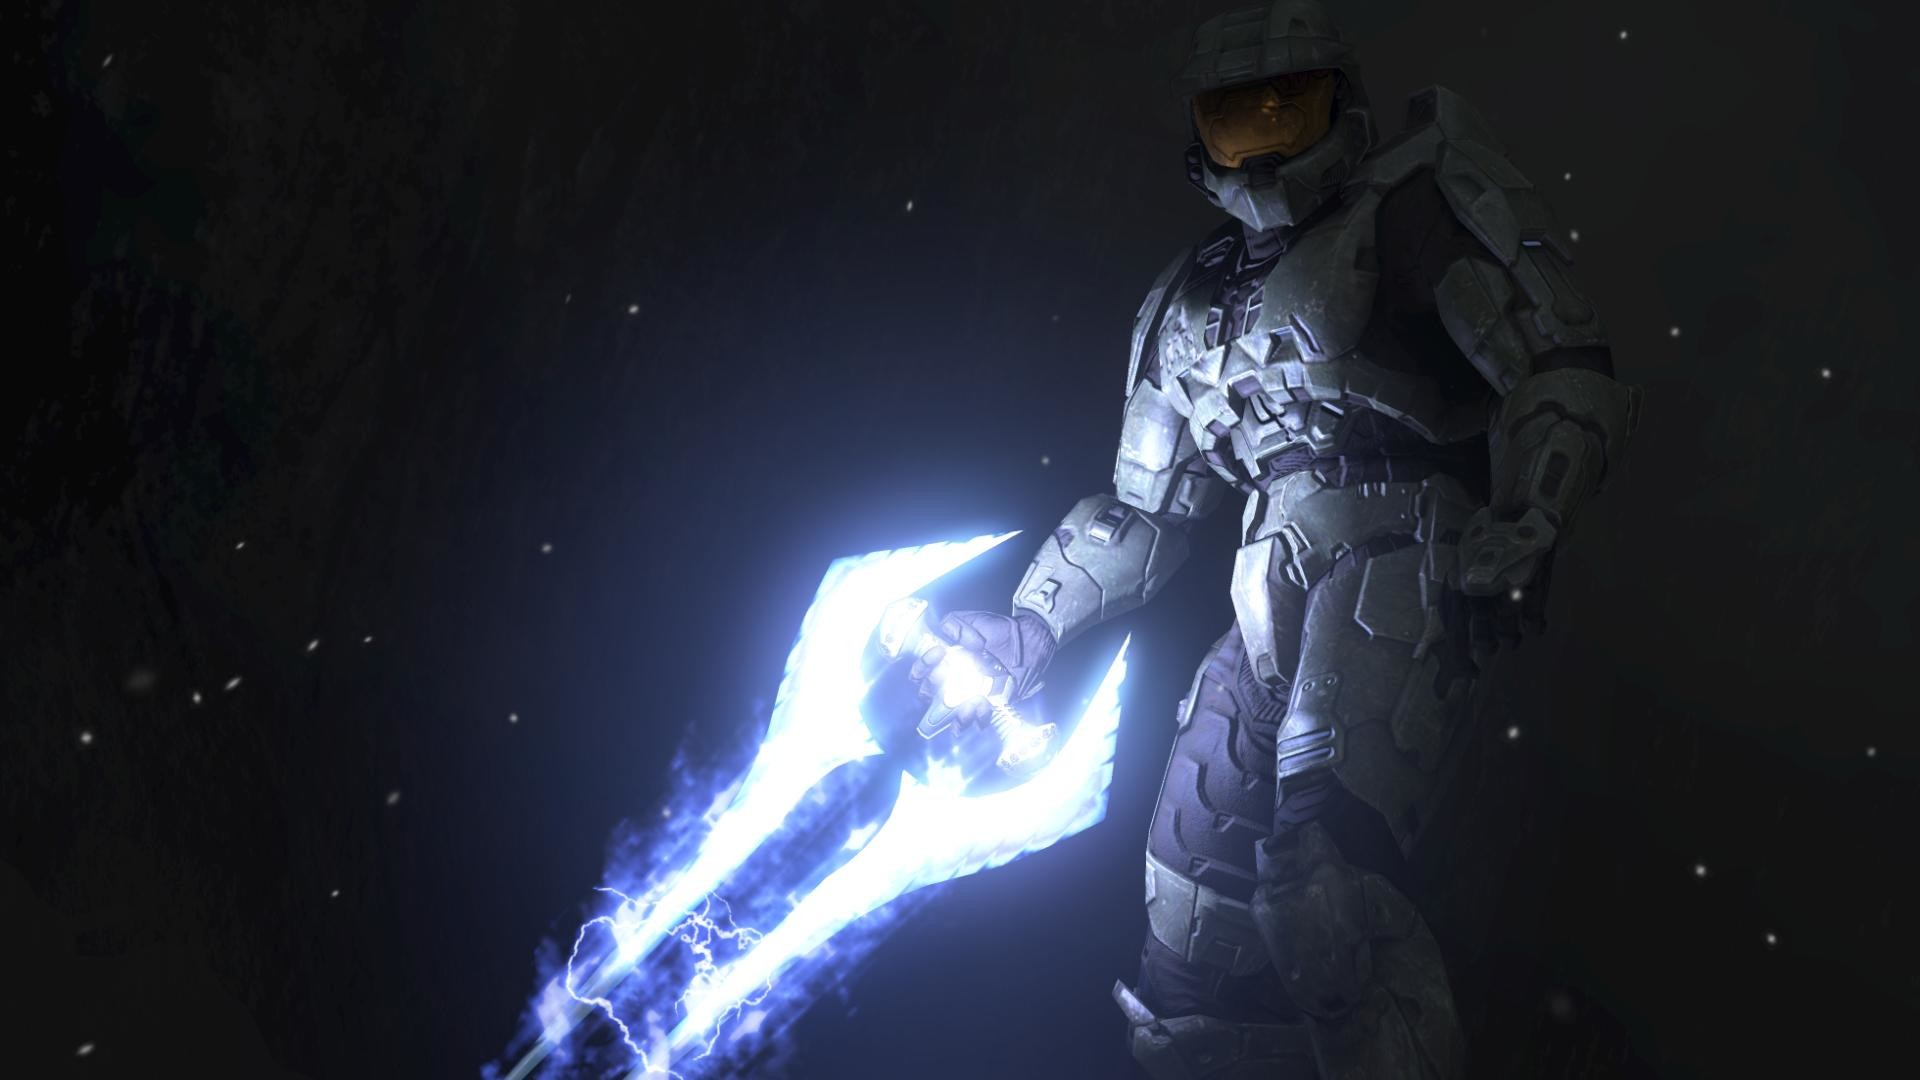 Halo 4 cortana wallpaper 72 images 1920x1080 halo 4 wallpaper source halo 4 backgrounds hd voltagebd Image collections